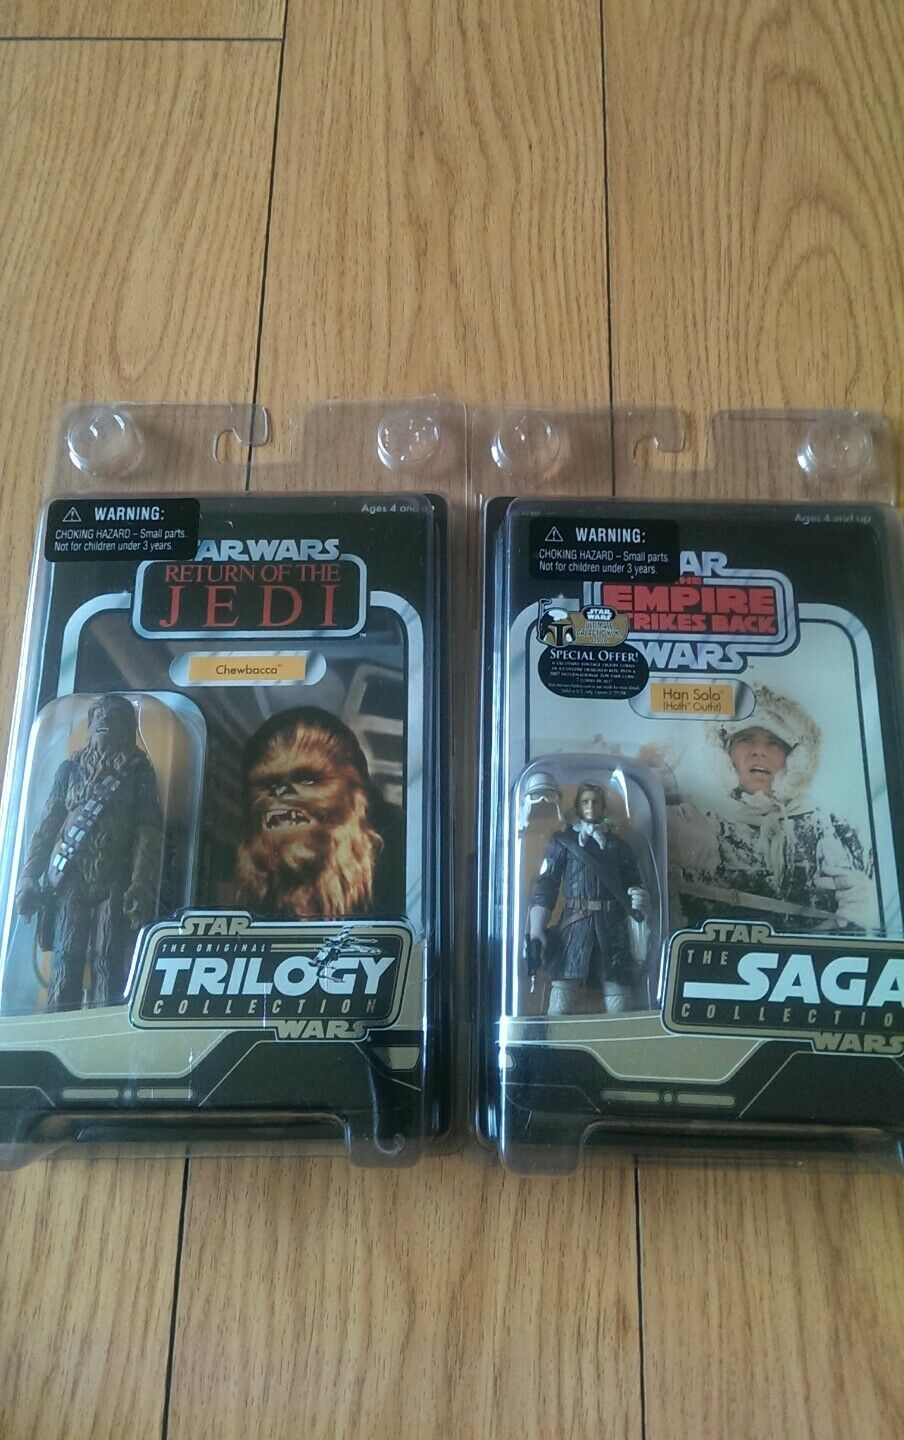 Han Solo Hoth Outfit 2007 STAR WARS The Saga Collection And otc Chewbacca...